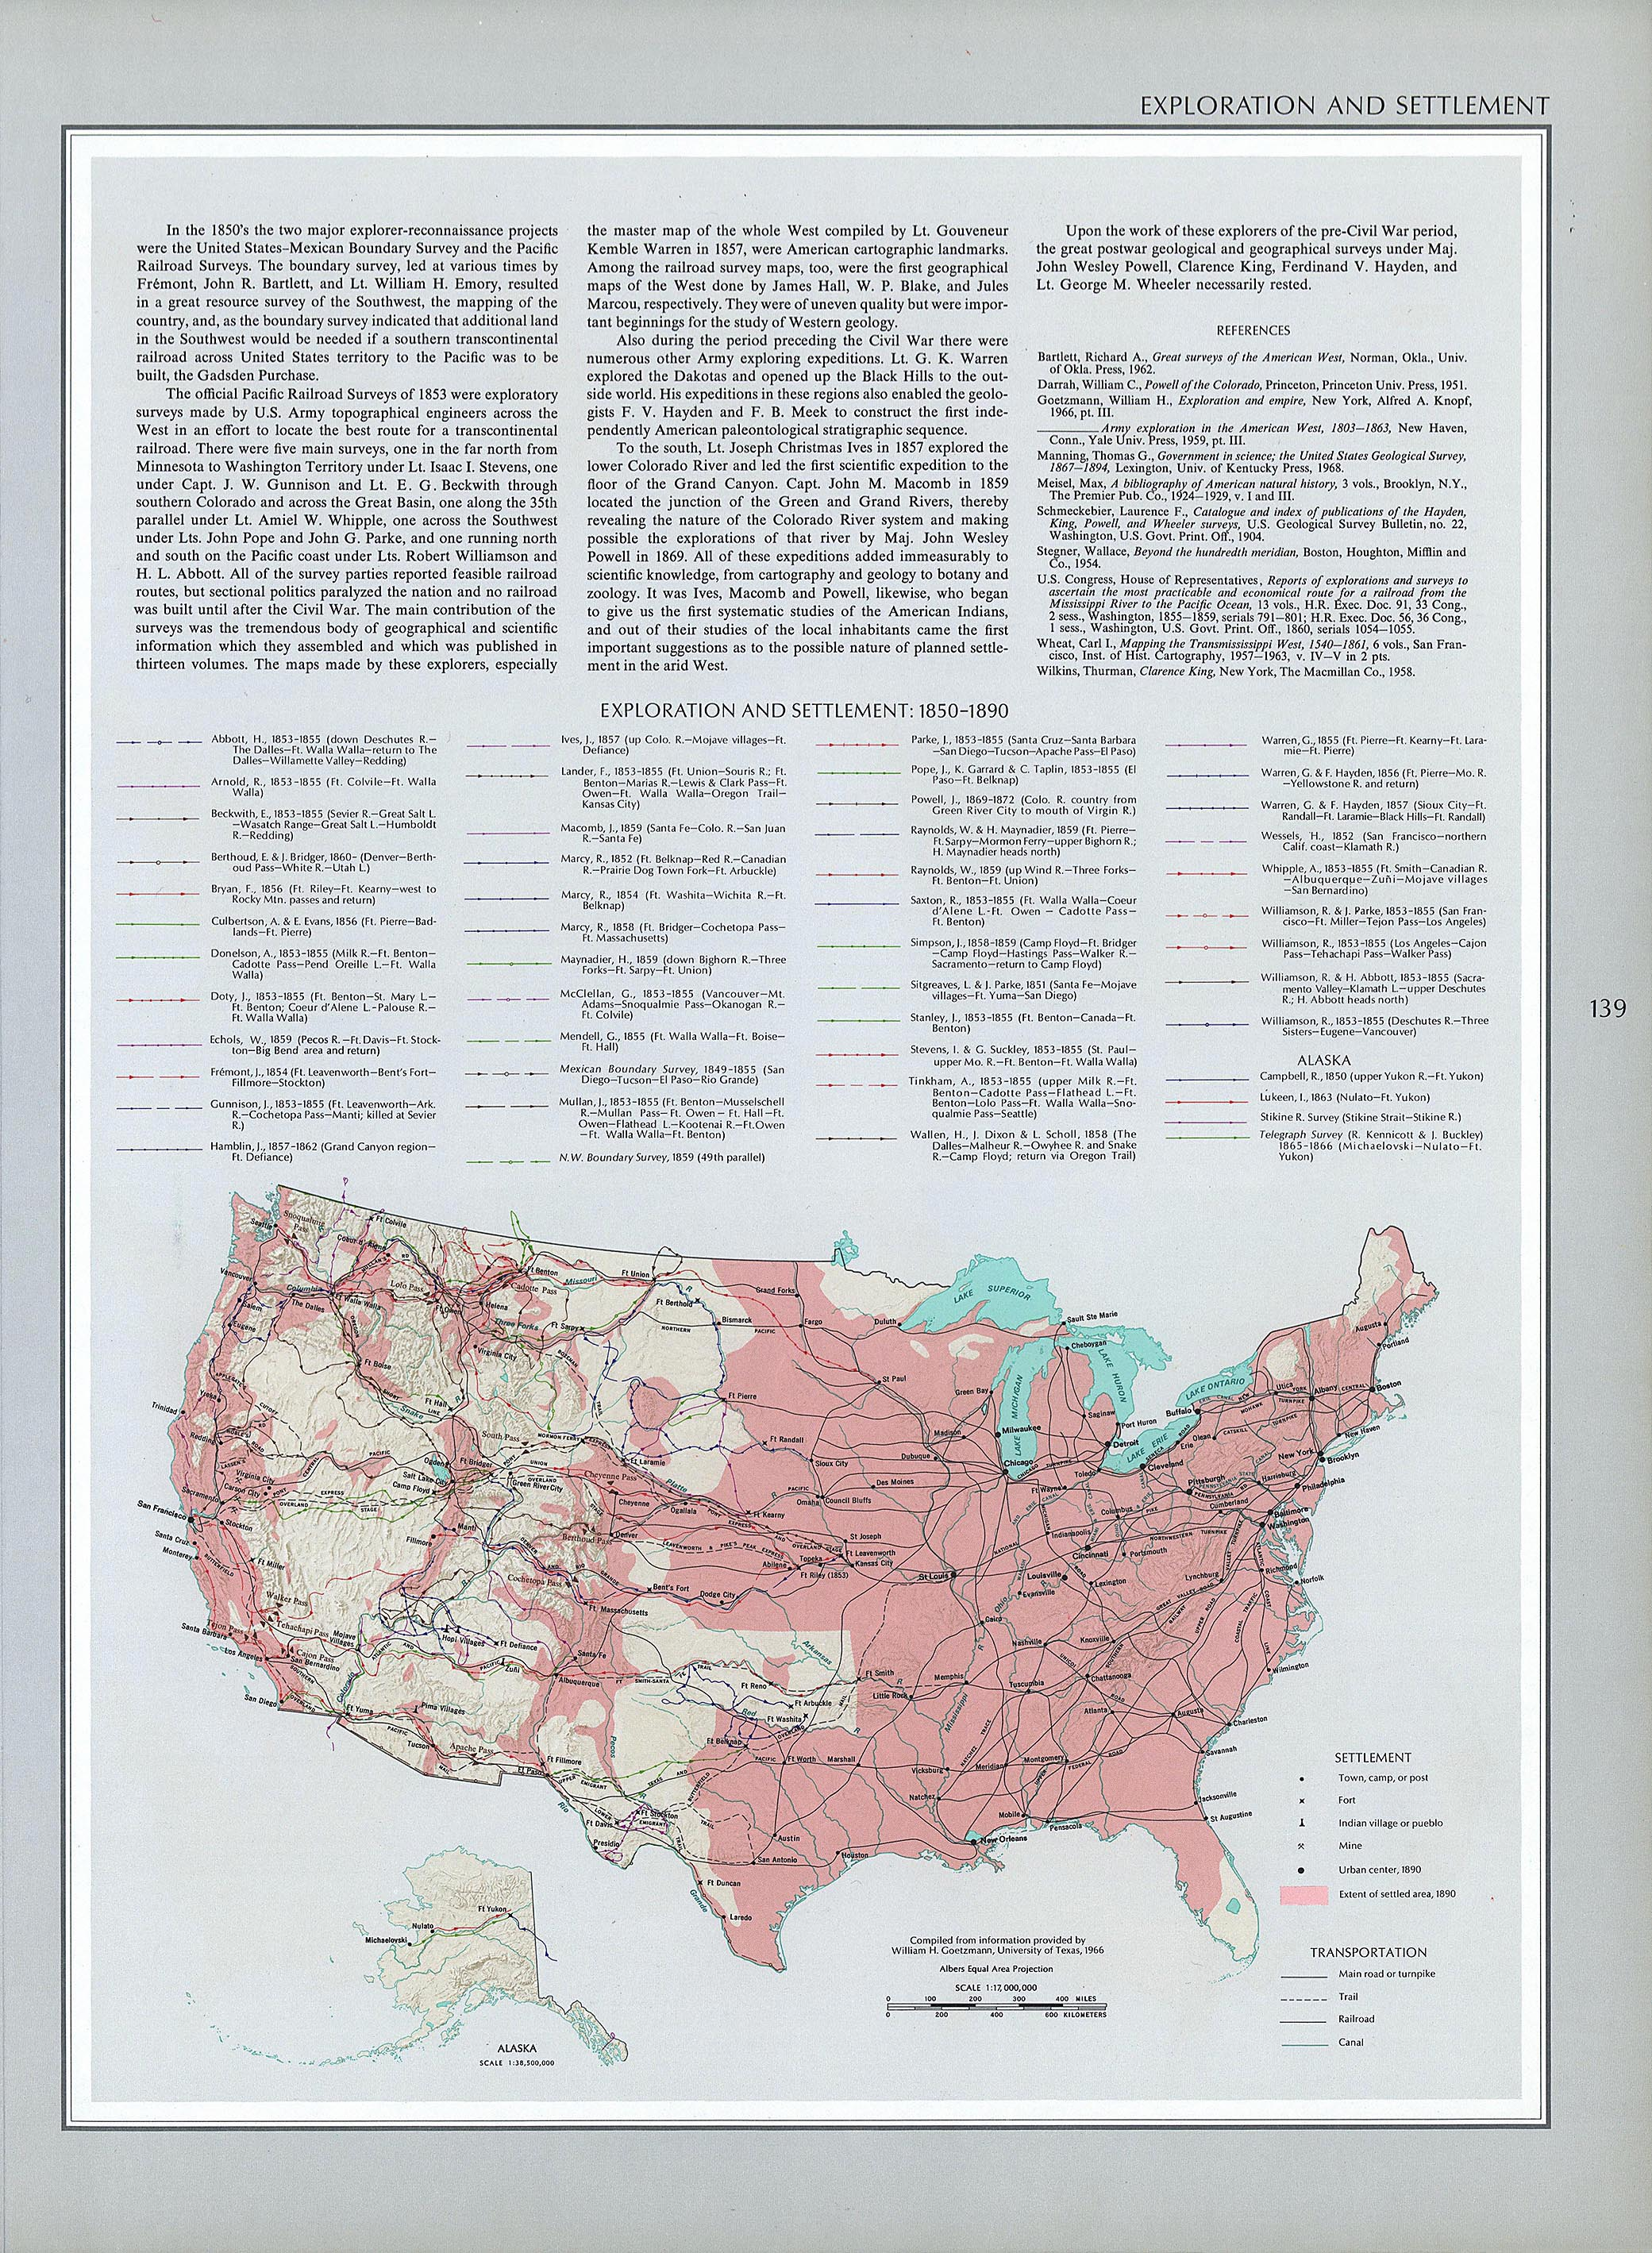 Exploration and Settlement Map, United States 1850  - 1890